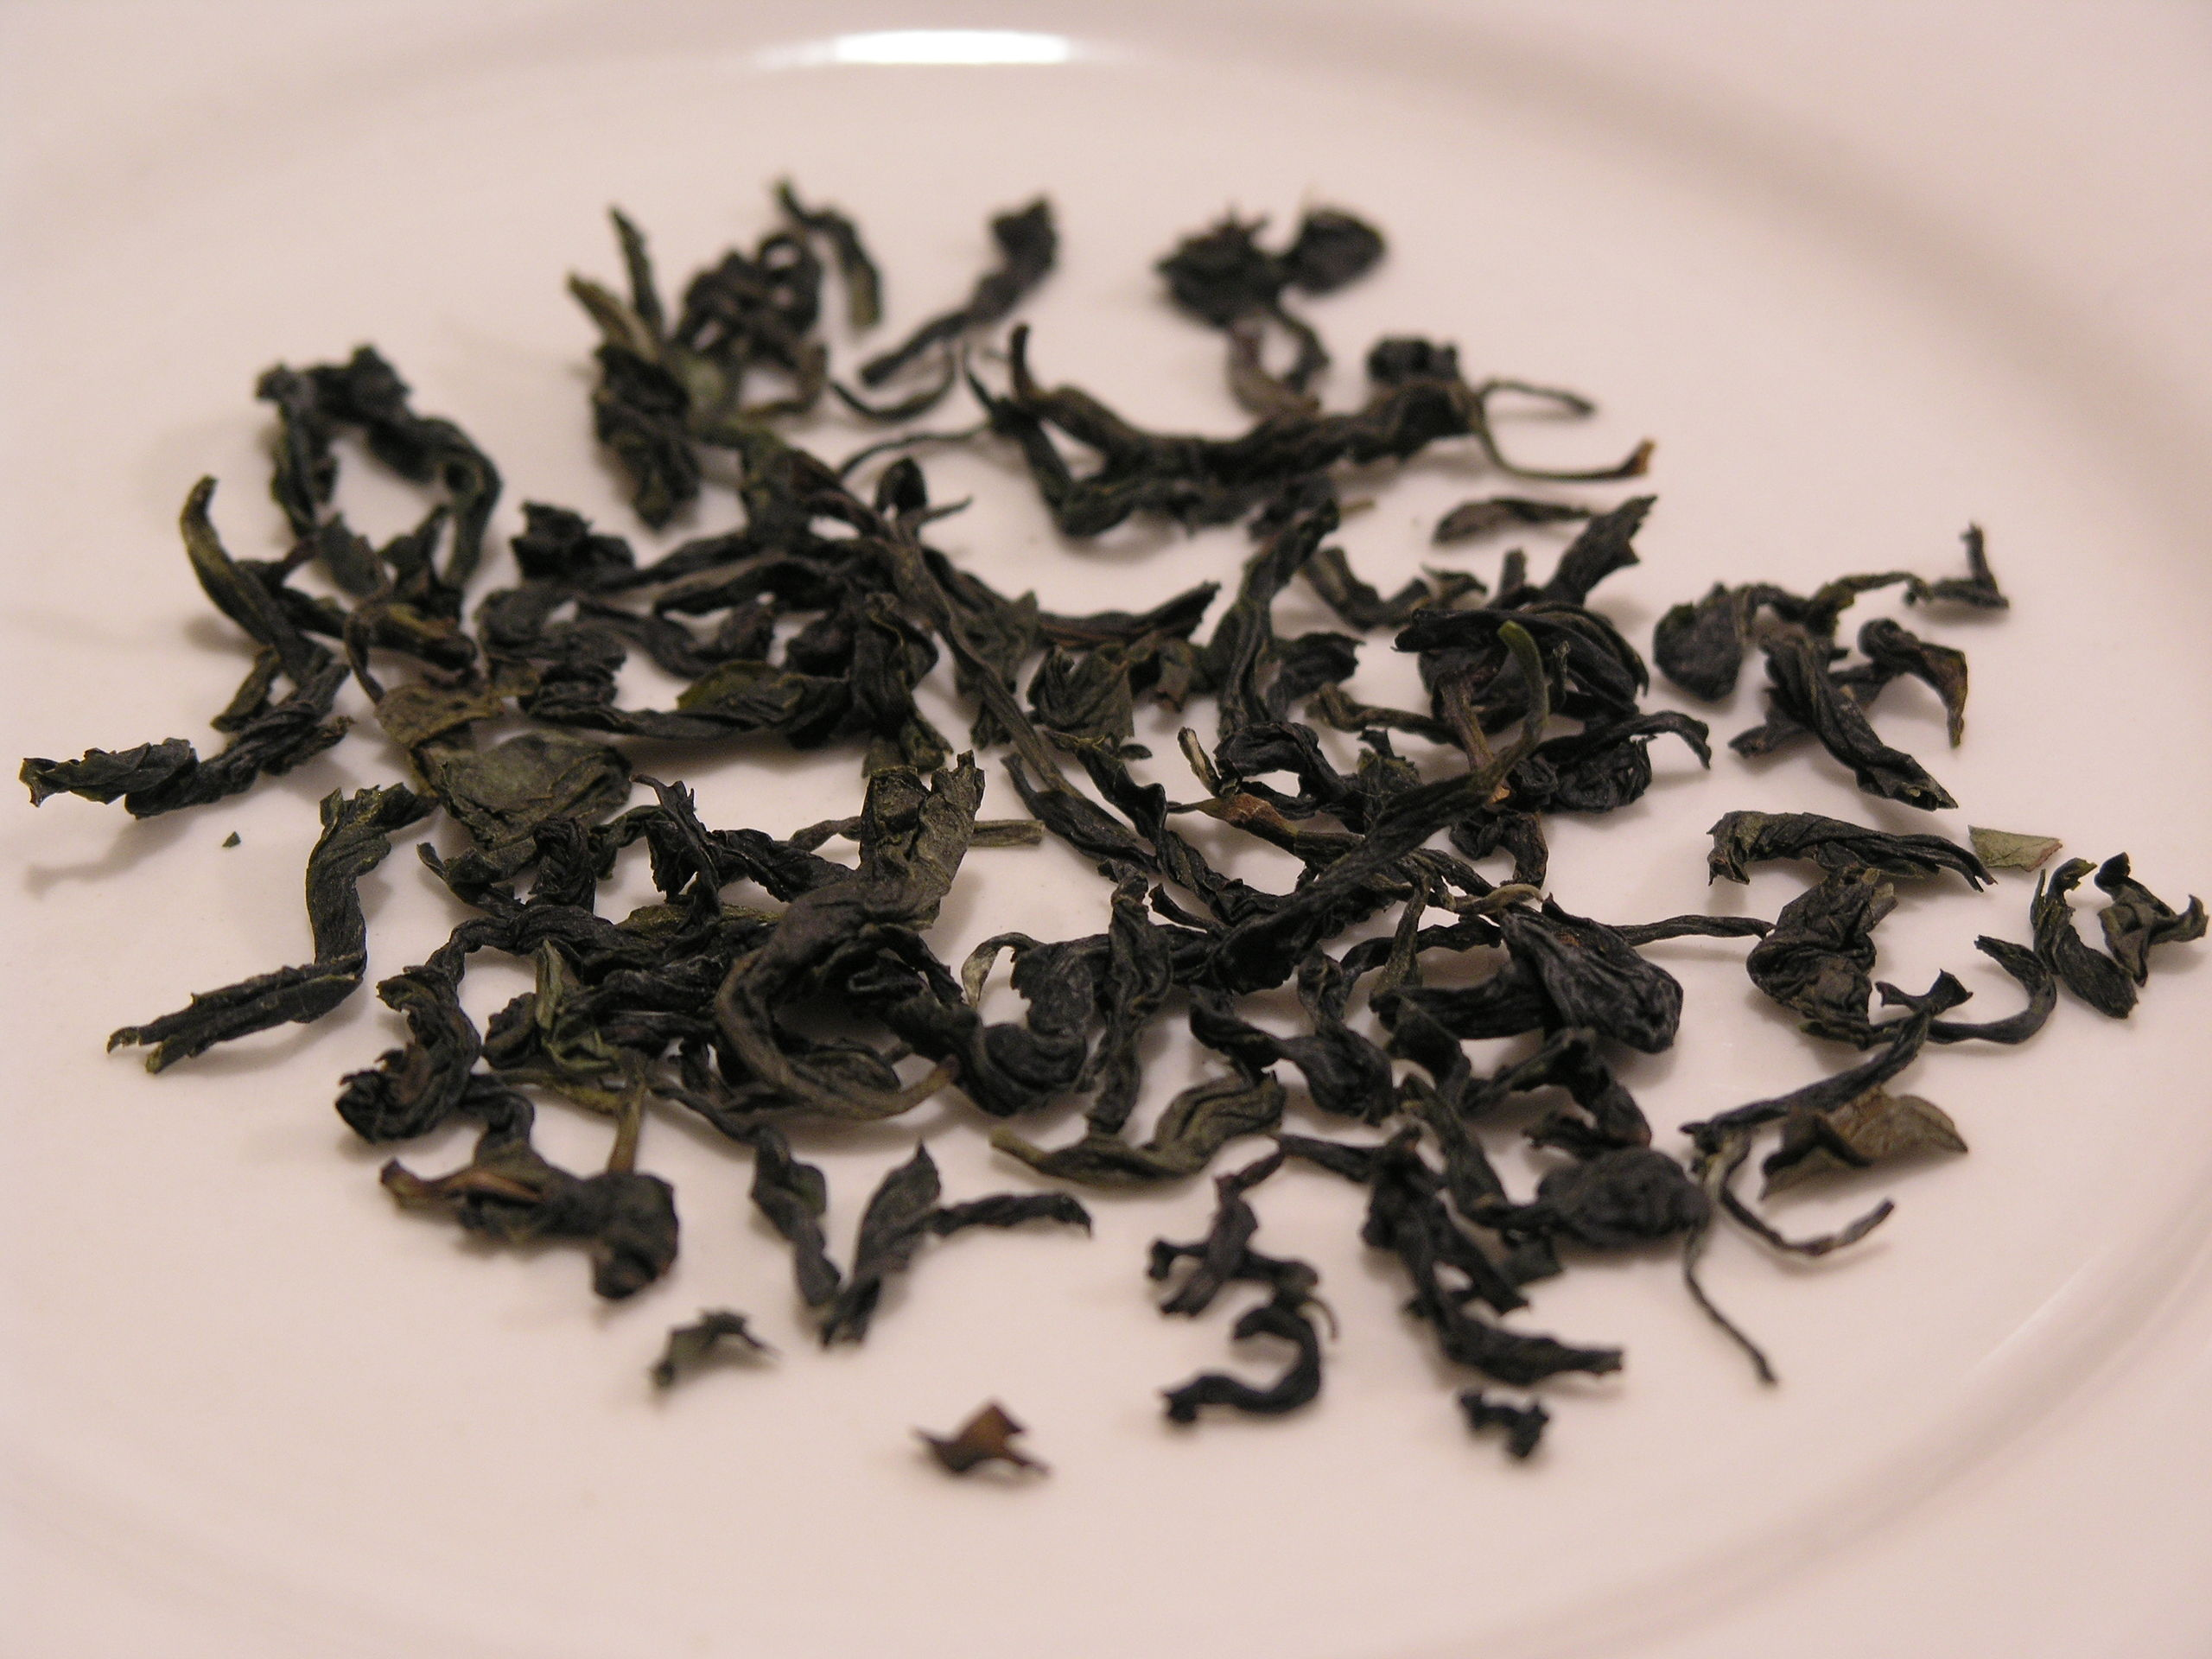 Spring Pouchong tea - CC BY SA 3.0 by Richard Corner